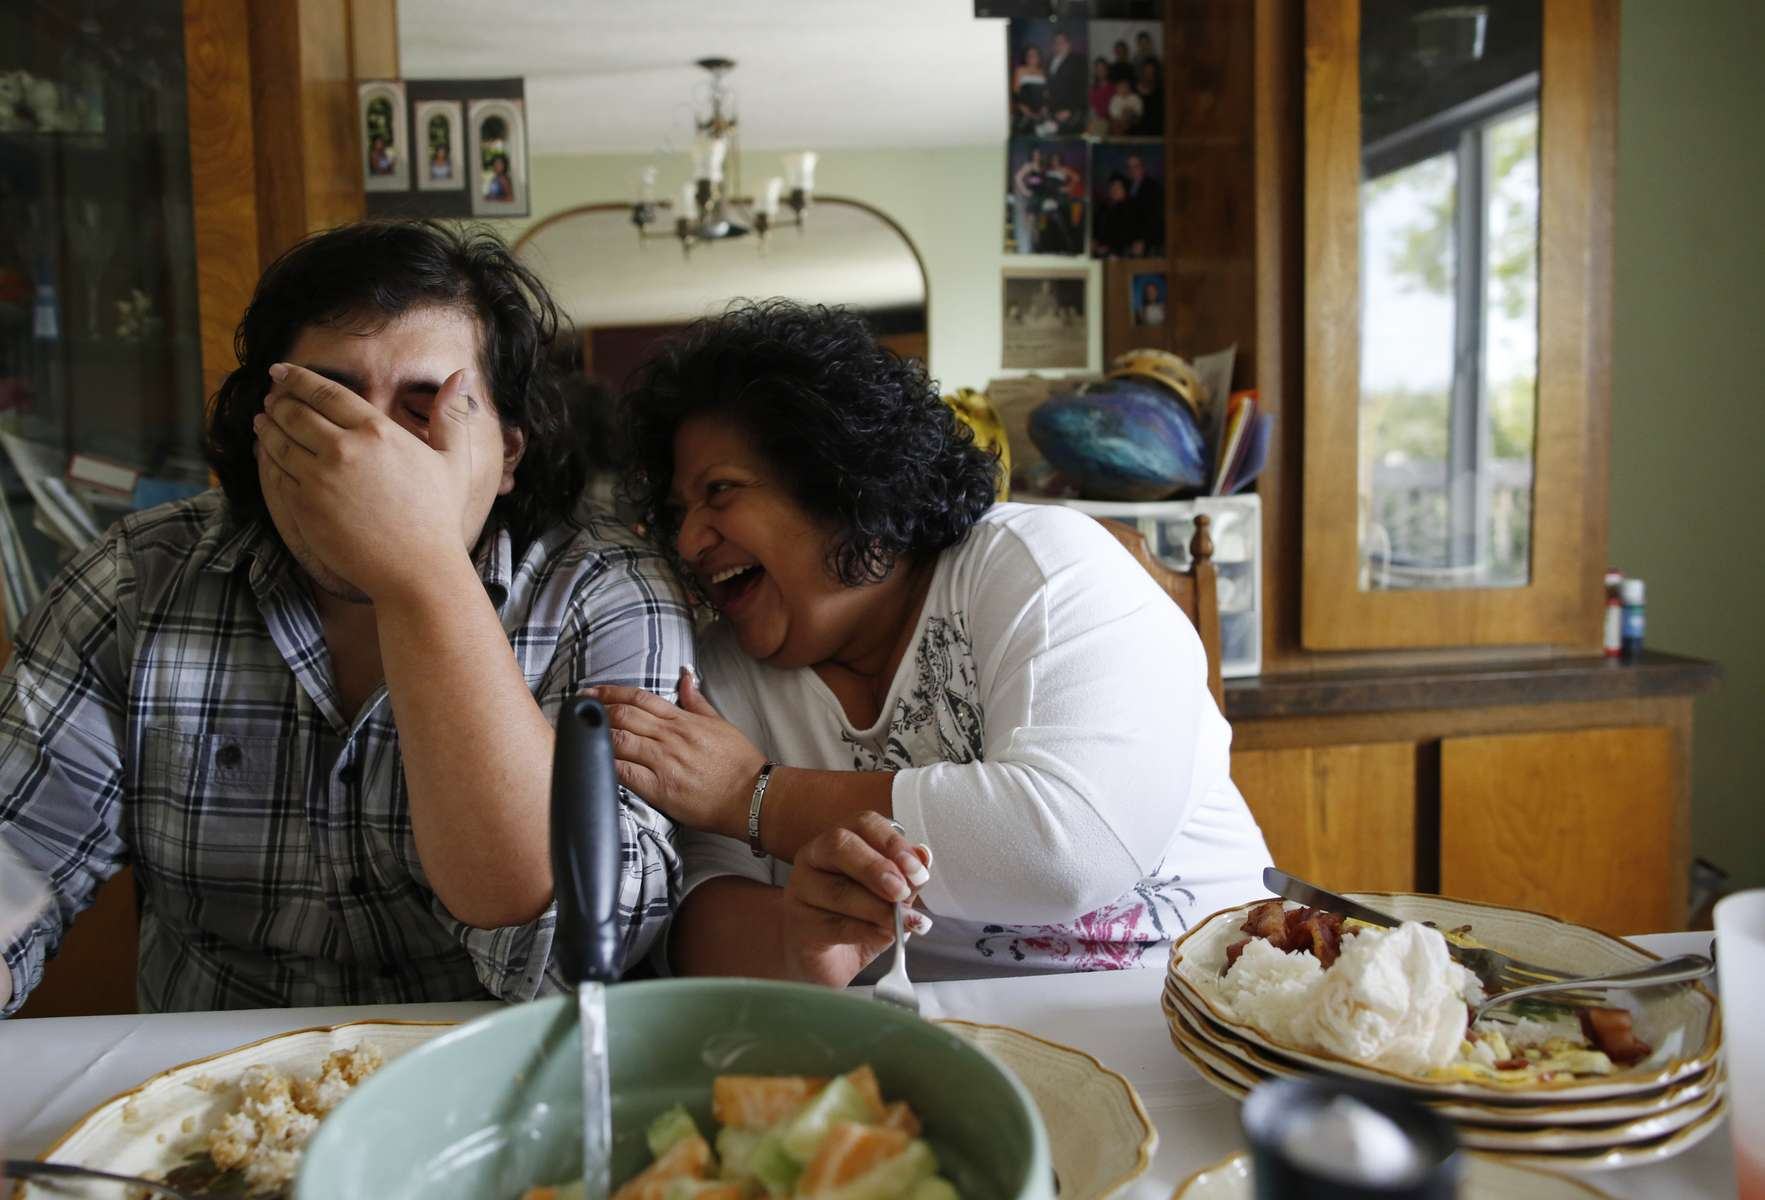 Cynthia de Victoria laughs with her son, Warren, 23, over breakfast at their home in Mattawa, Washington, August 25, 2013. de Victoria was the only Hispanic on the school board in 2009 when she was appointed to fill a vacancy. She urged Latino parents to attend meetings and prodded the white board members to learn how poverty affects learning. When she had to run for the seat in 2011, she lost to a white man.